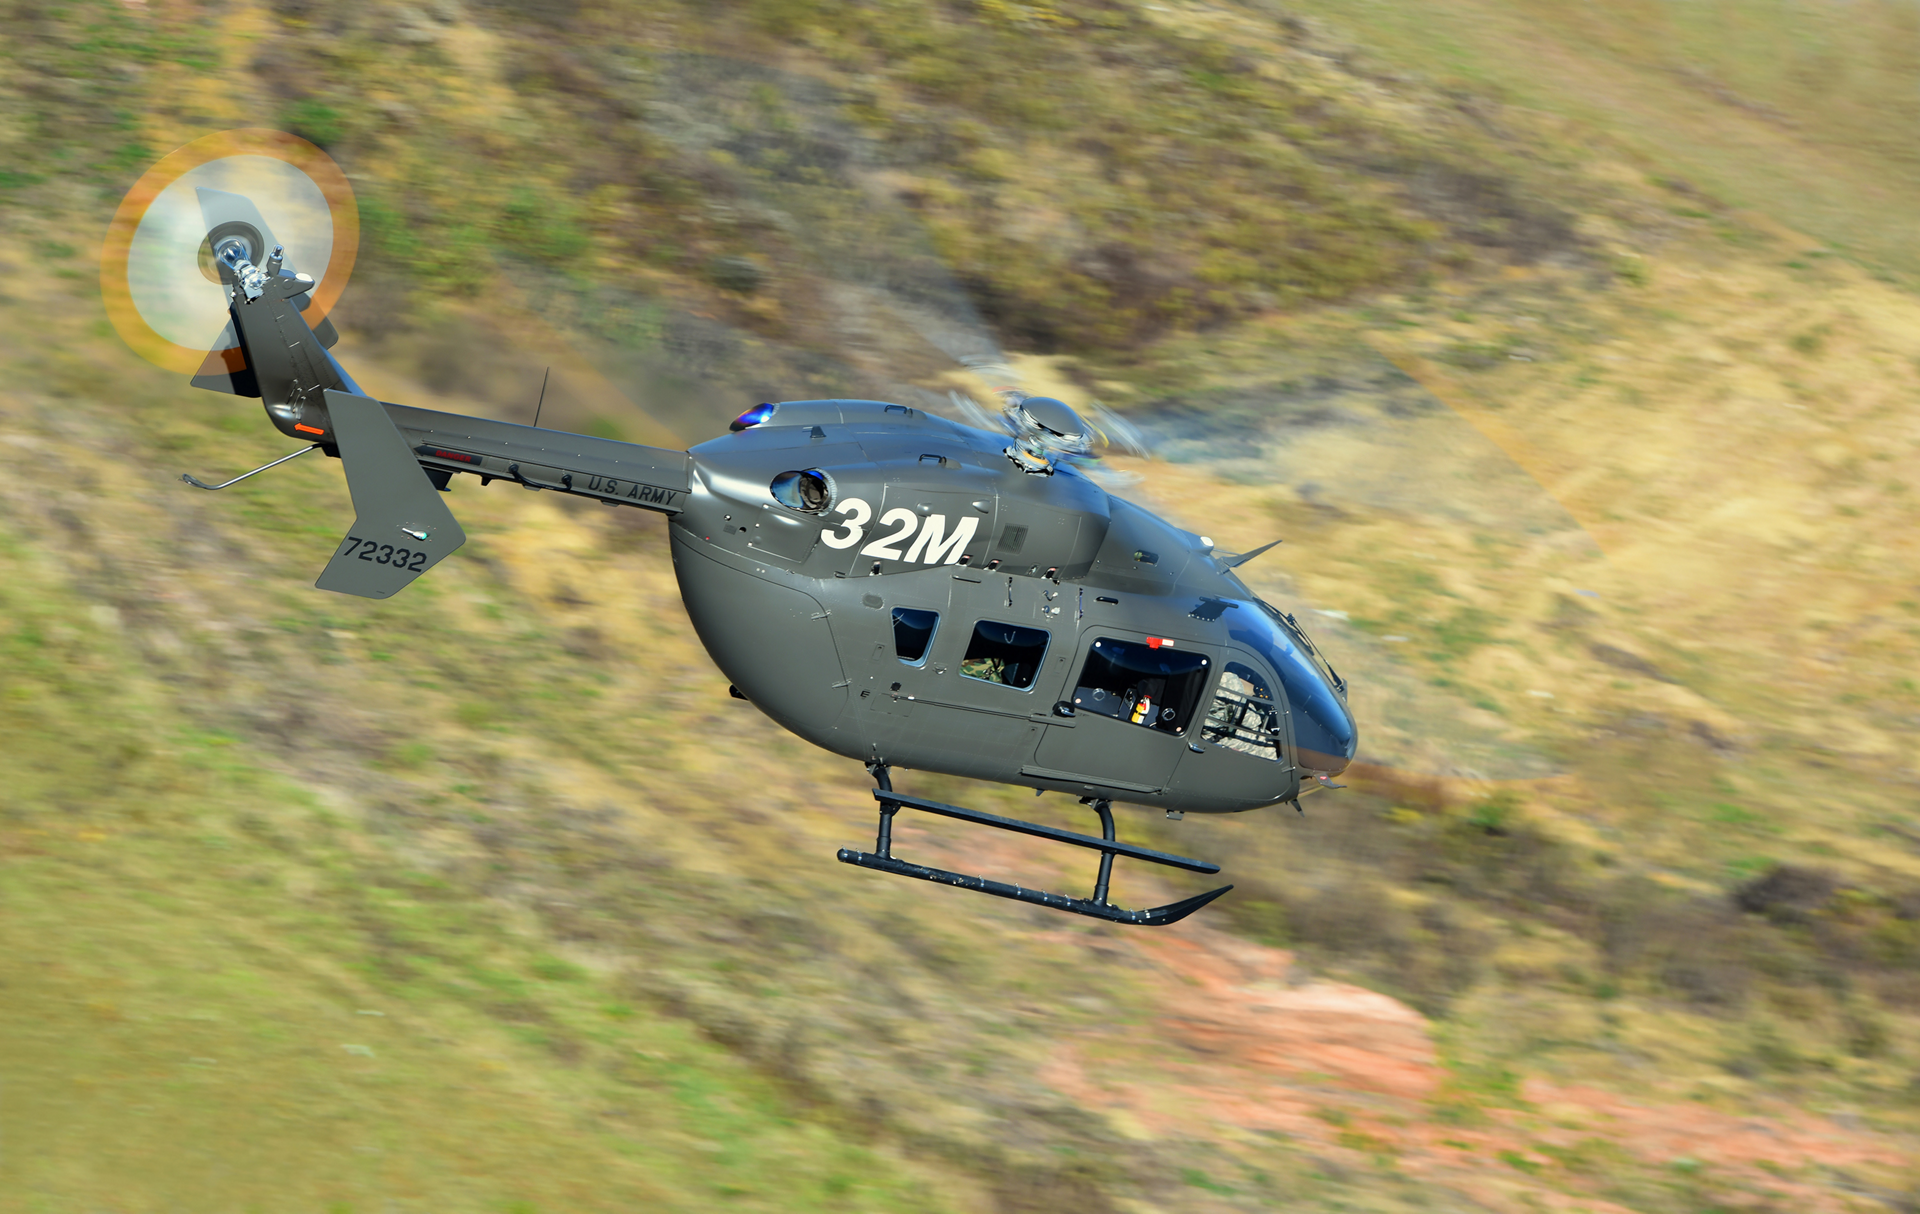 Airbus Helicopters, Inc. received a contract valued at approximately $273 million to deliver 35 additional UH-72A Lakotas for the United States Army.